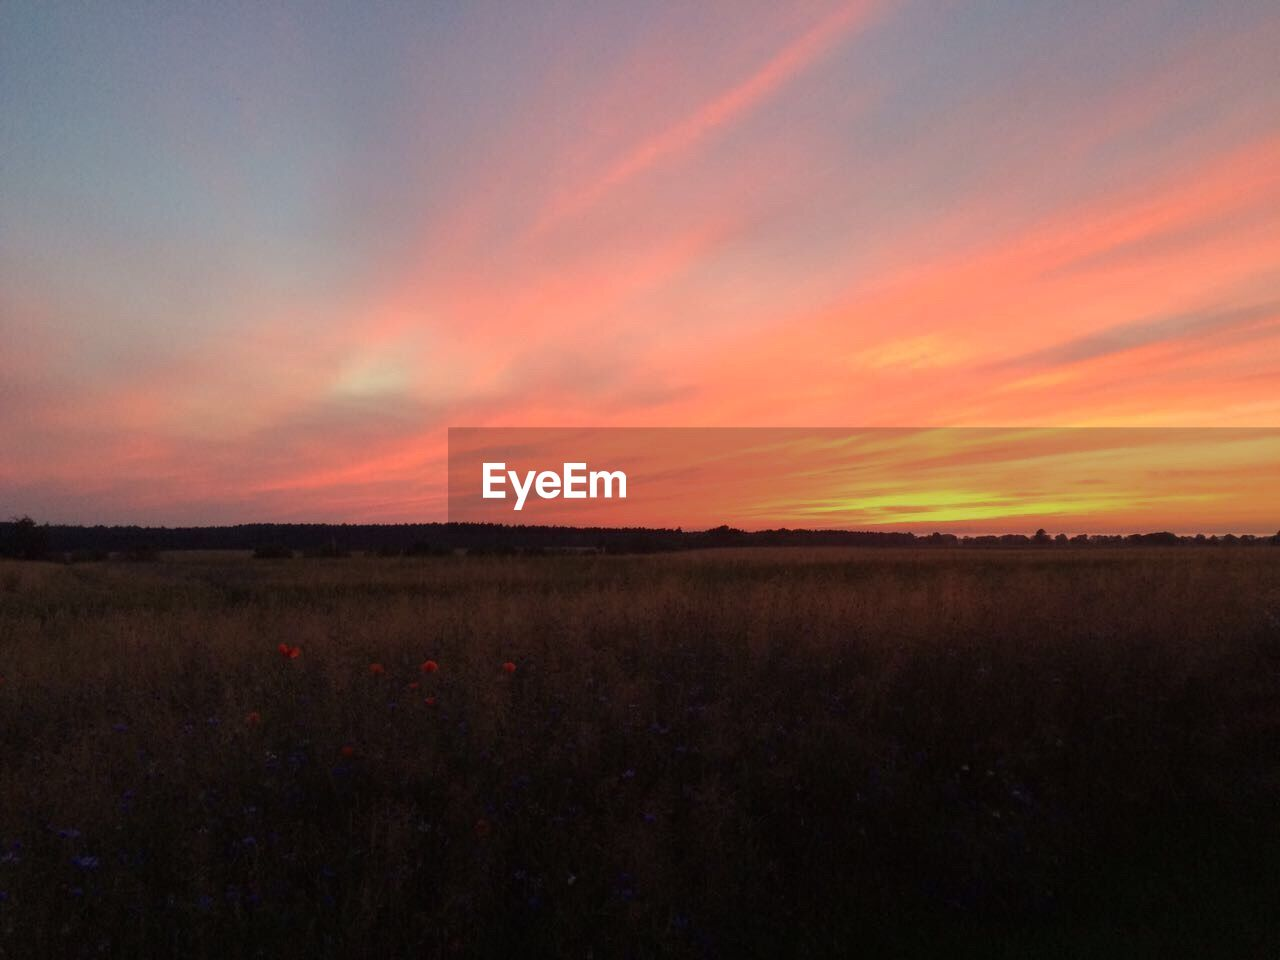 landscape, nature, field, sunset, scenics, beauty in nature, tranquility, tranquil scene, no people, sky, agriculture, rural scene, outdoors, growth, day